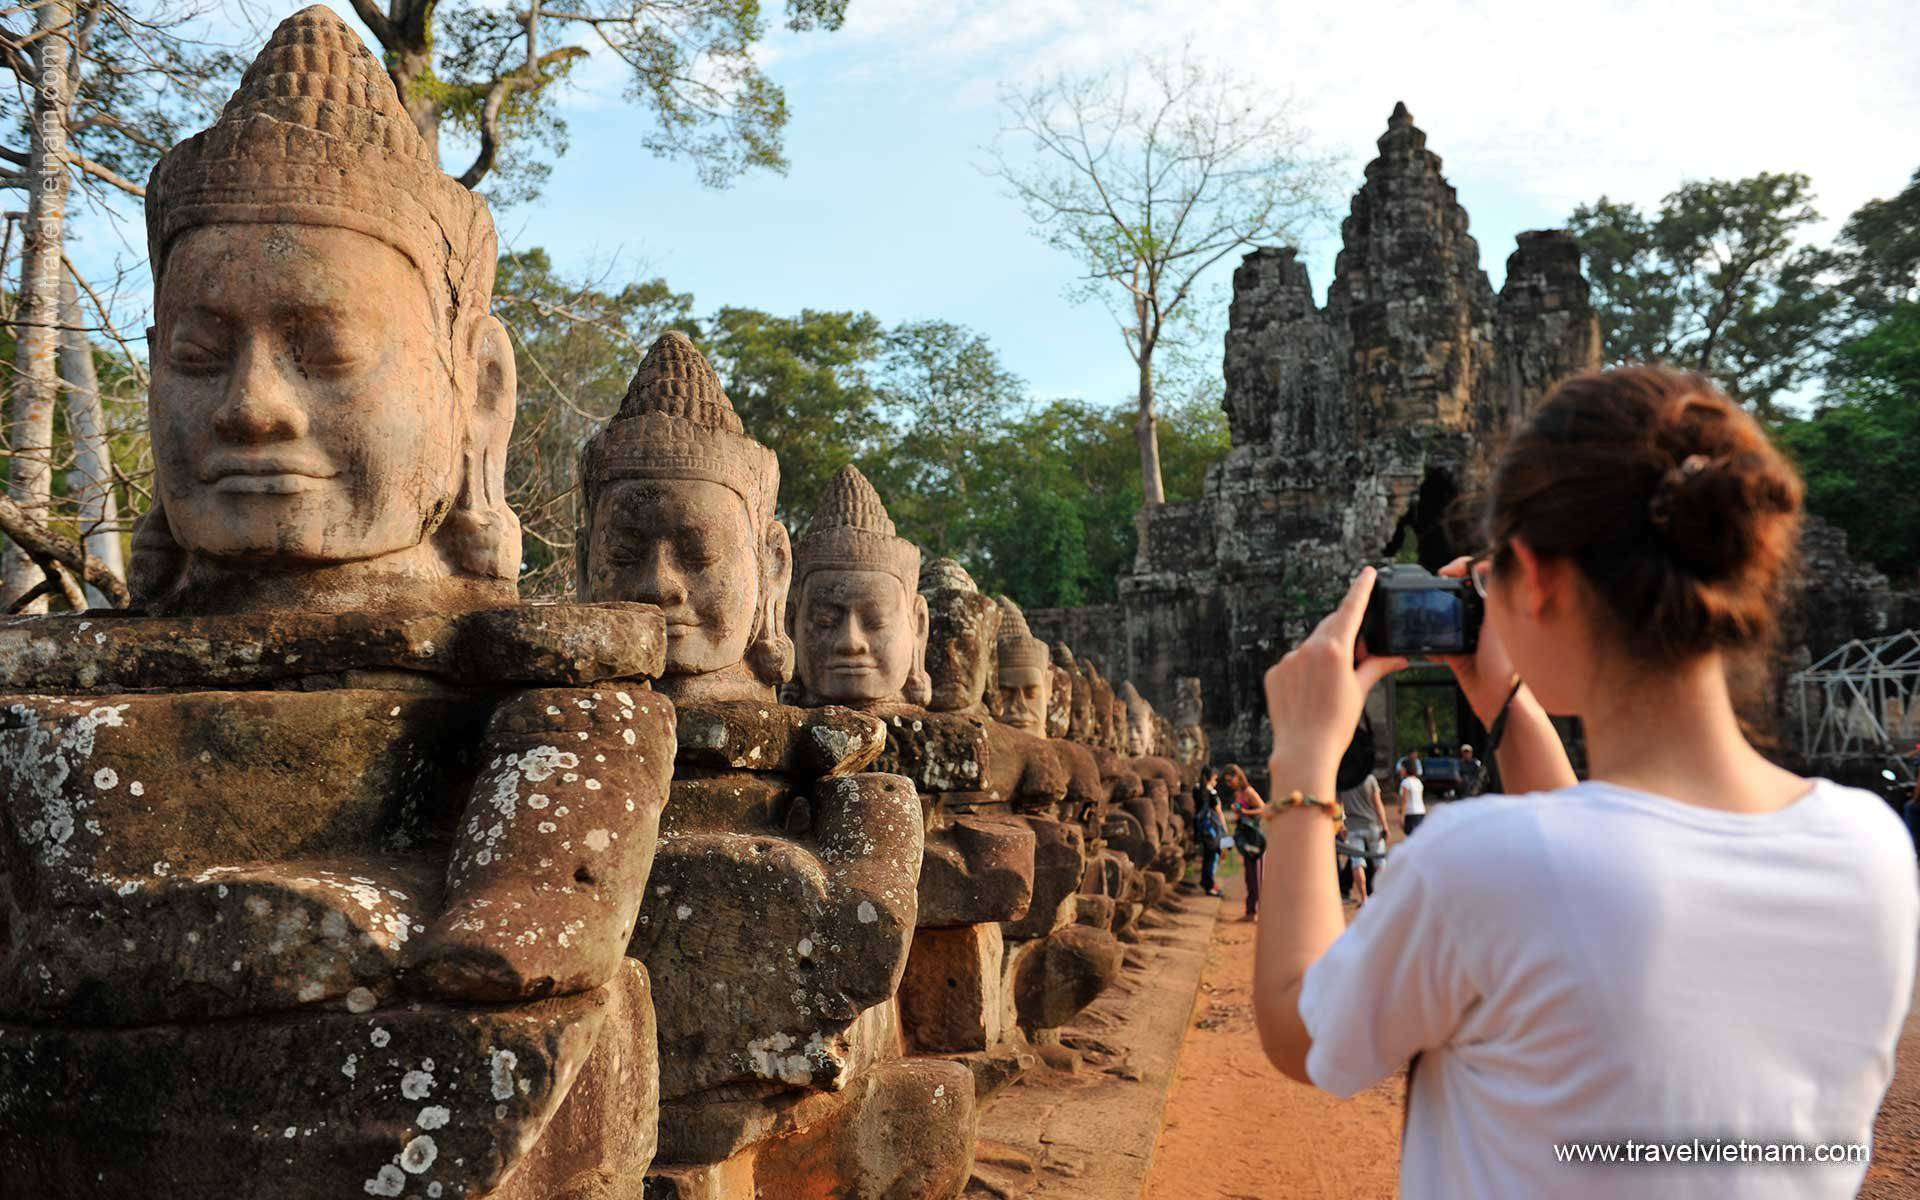 From Angkor Wat to Phu Quoc